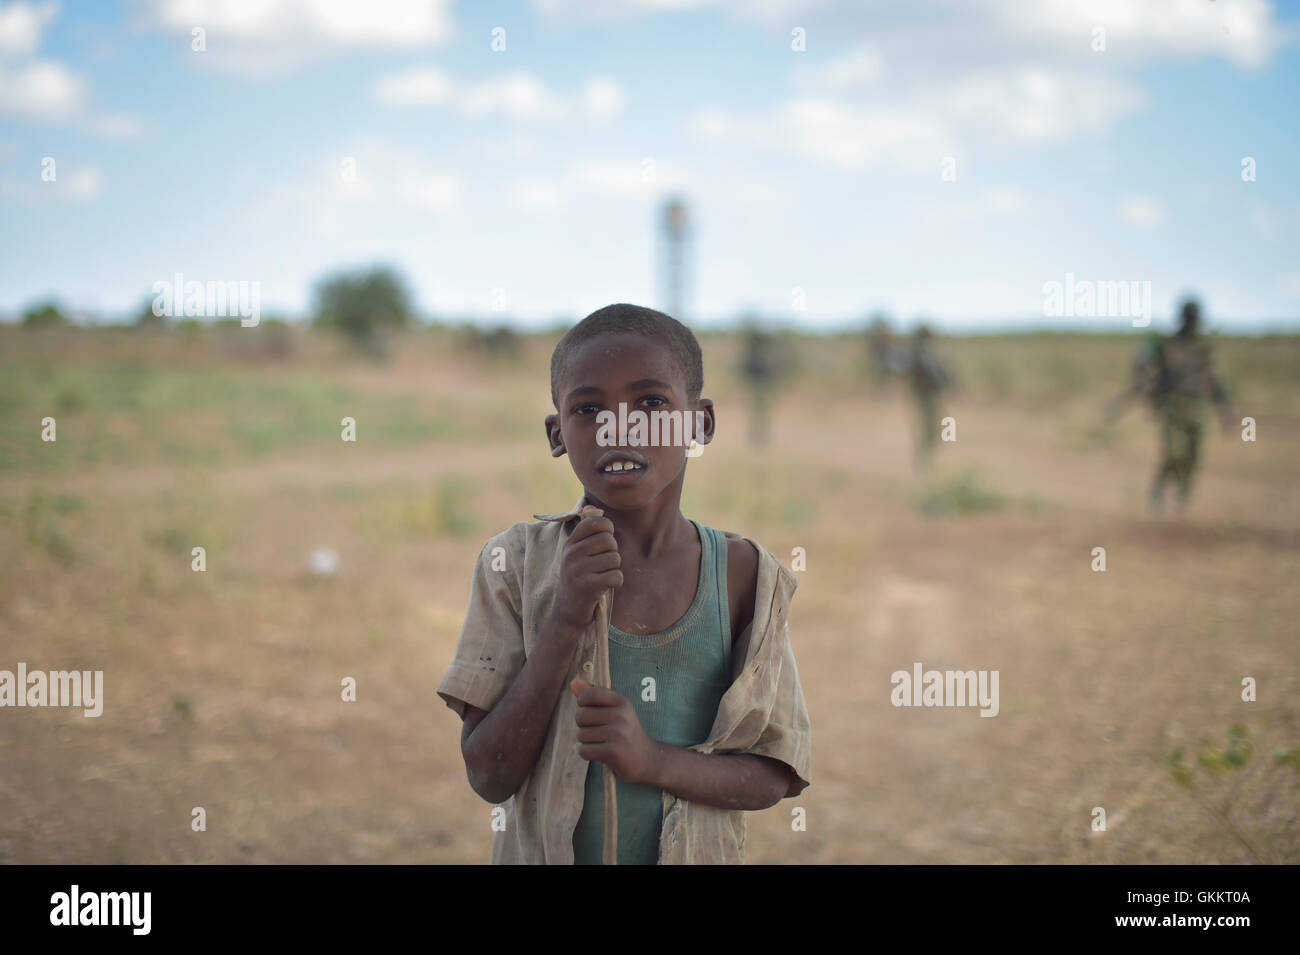 A young boy poses for the camera as Burundian trooops, part of the Afrian Union Mission in Somalia, patrol the countrside Stock Photo